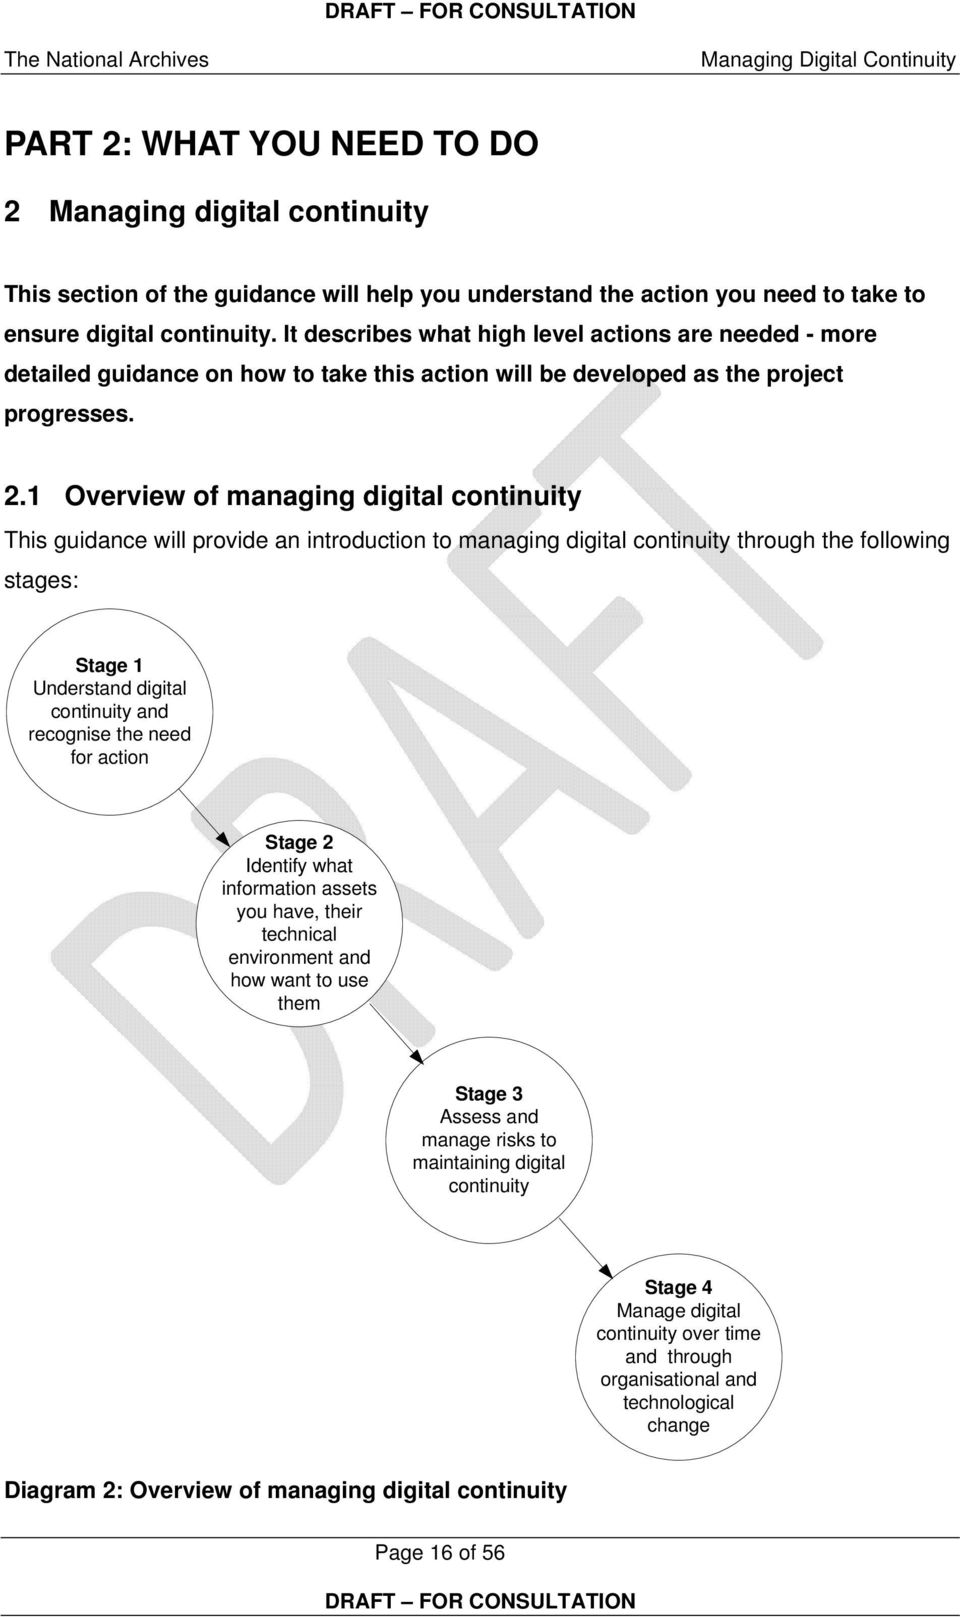 1 Overview of managing digital continuity This guidance will provide an introduction to managing digital continuity through the following stages: Stage 1 Understand digital continuity and recognise